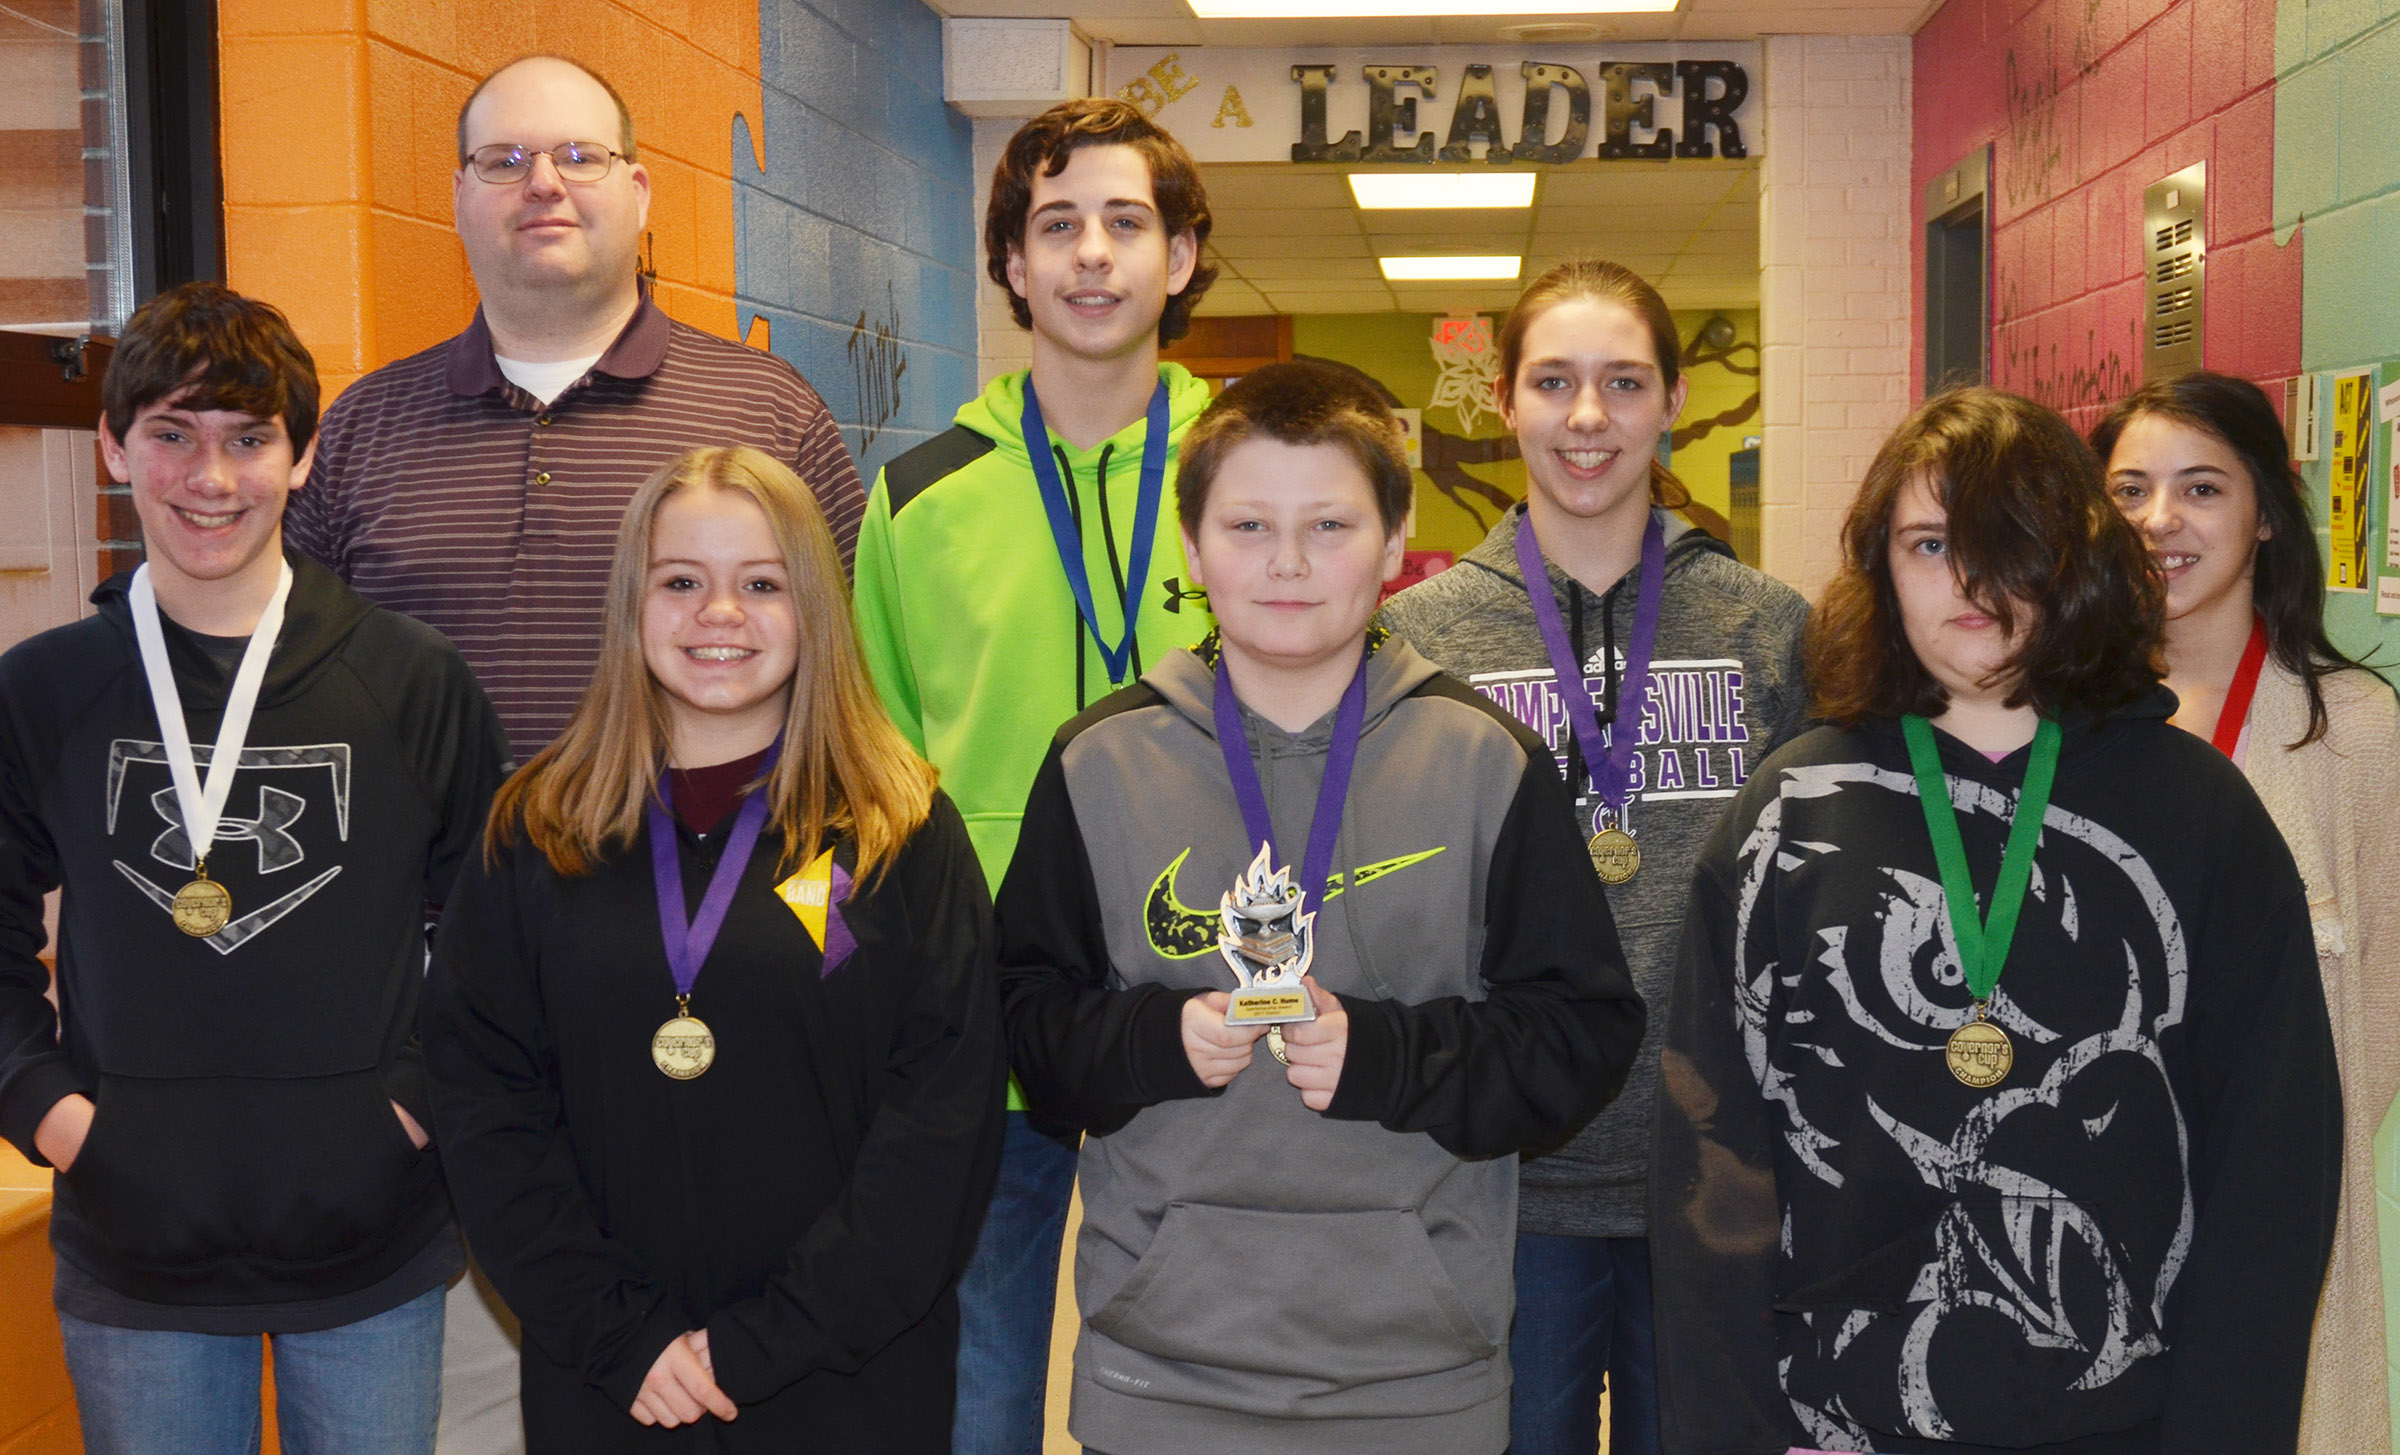 CMS academic team members advancing to region competition are, from left, front, seventh-graders Peyton Dabney, Riley Rainwater and Bailey Stearman and eighth-grader Haley Lopez. Back, coach Steven Gumm, eighth-graders John Orberson and Abi Wiedewitsch and seventh-grader Kaylyn Smith.